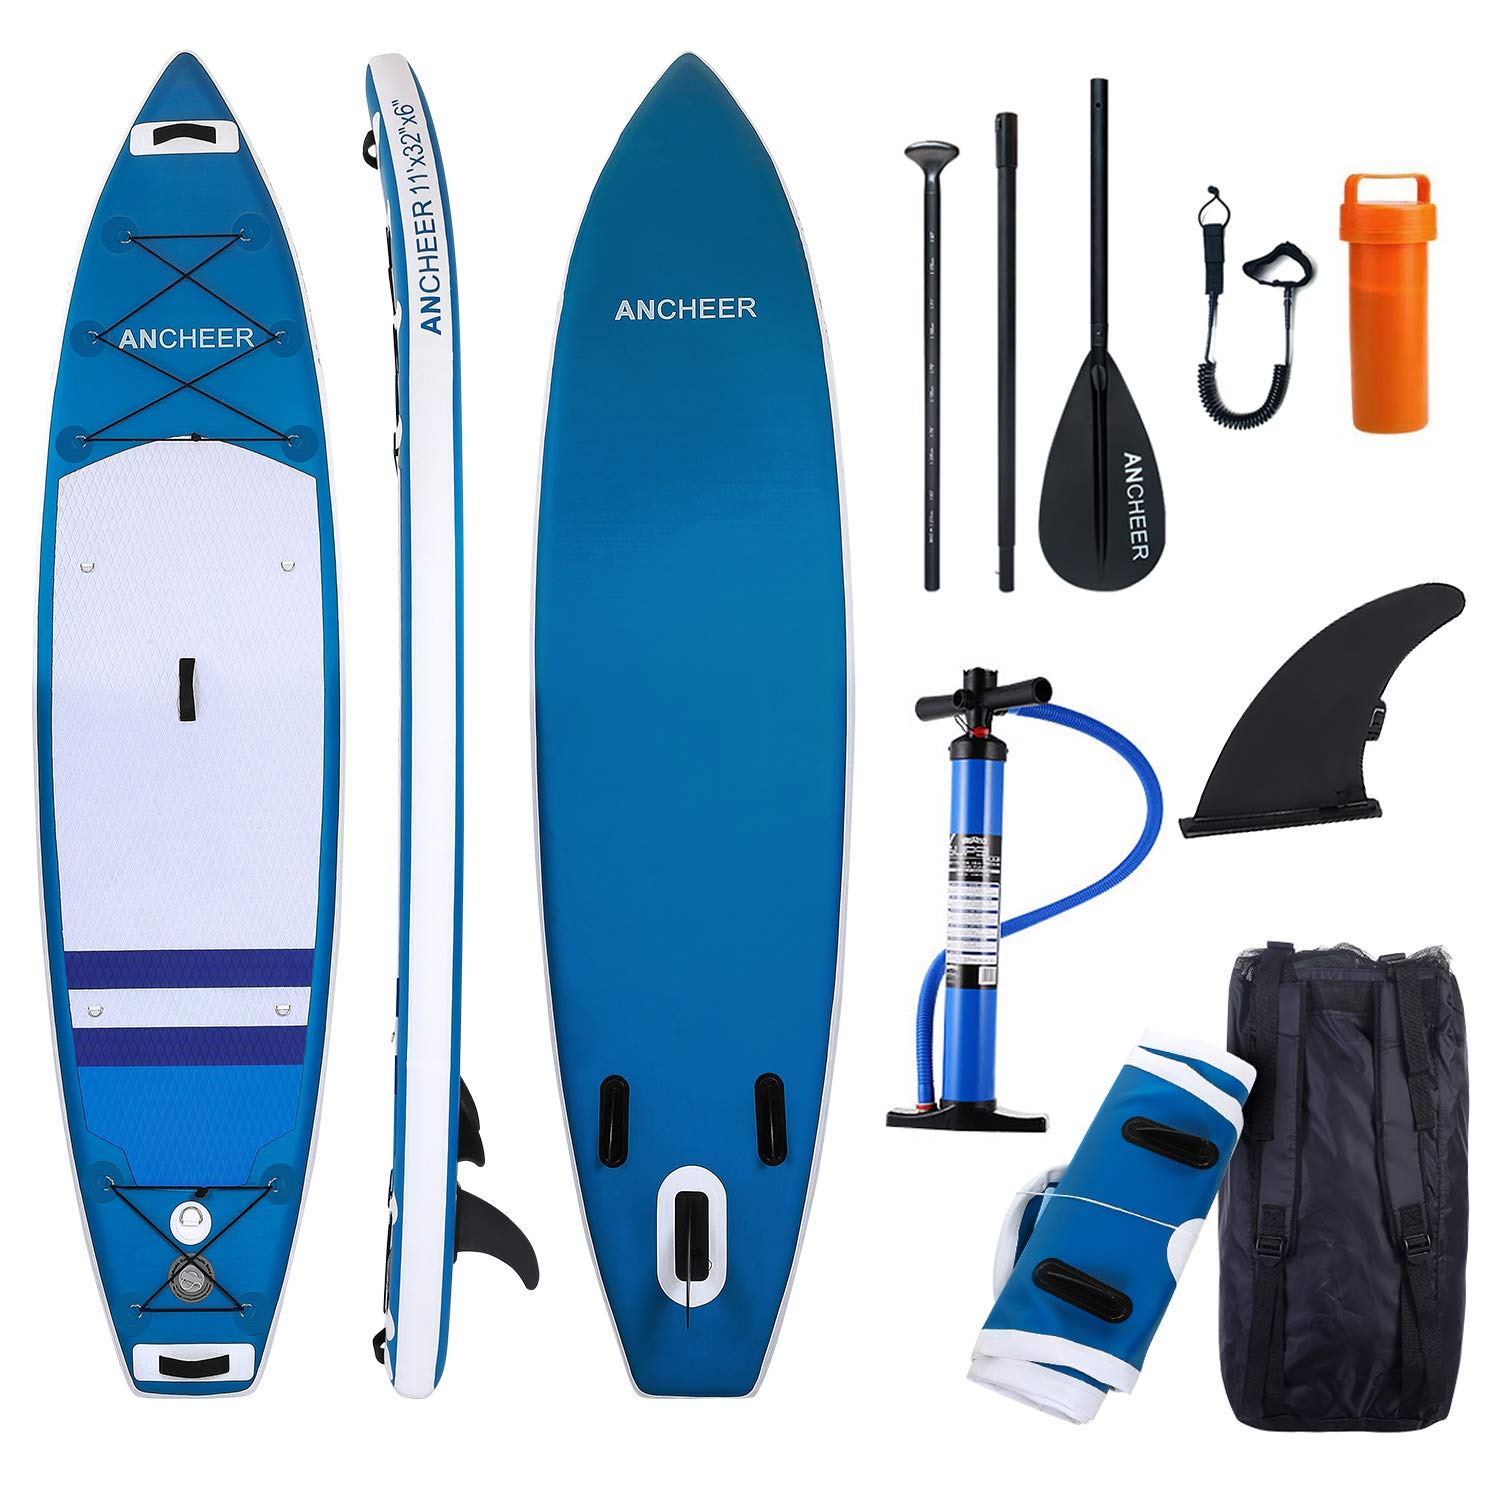 ANCHEER Inflatable Stand Up Paddle Board 10', Non-Slip Deck(6 Inches  Thick), iSUP Boards Package w/Adjustable Paddle, Leash, Hand Pump and  Backpack,